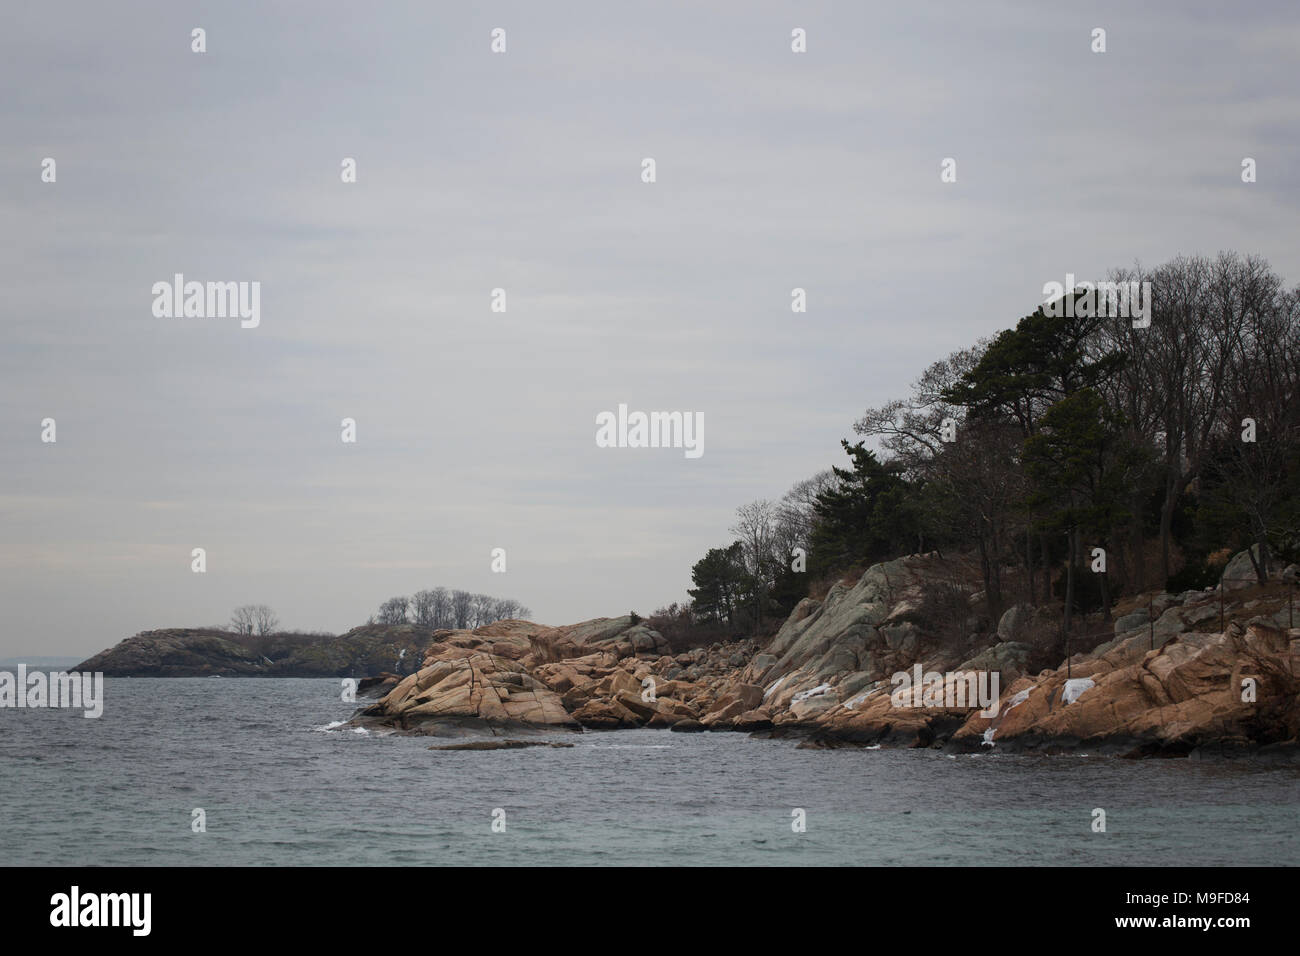 The rocky shoreline at the harbor in Manchester-by-the-Sea, Massachusetts, on a winter day. Stock Photo